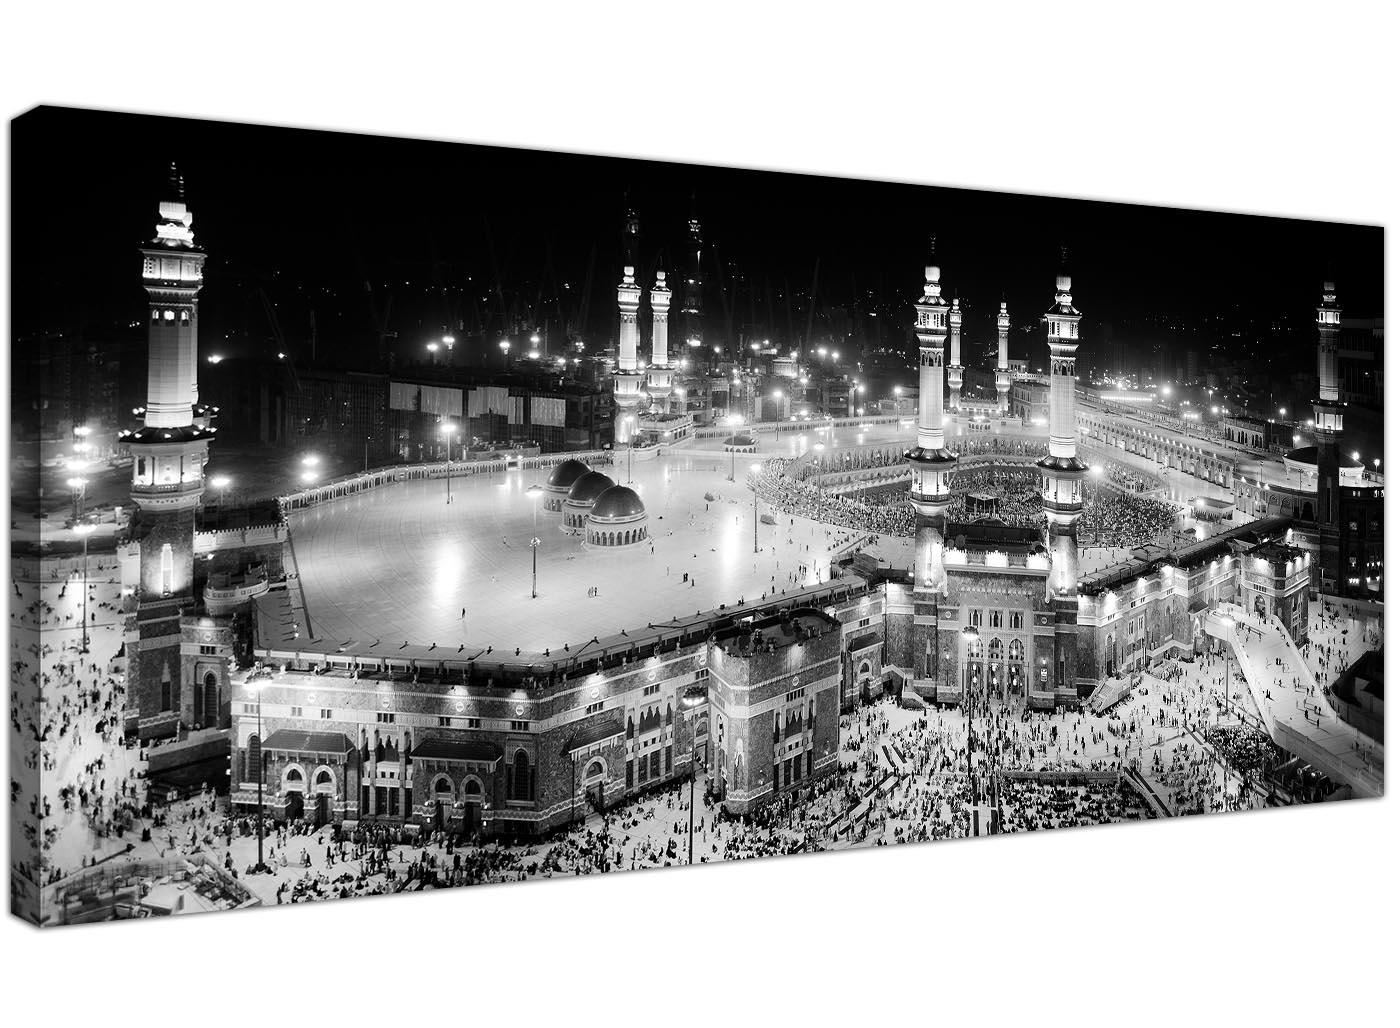 Details about black and white islamic canvas art prints muslim hajj kaaba pilgrimage mecca